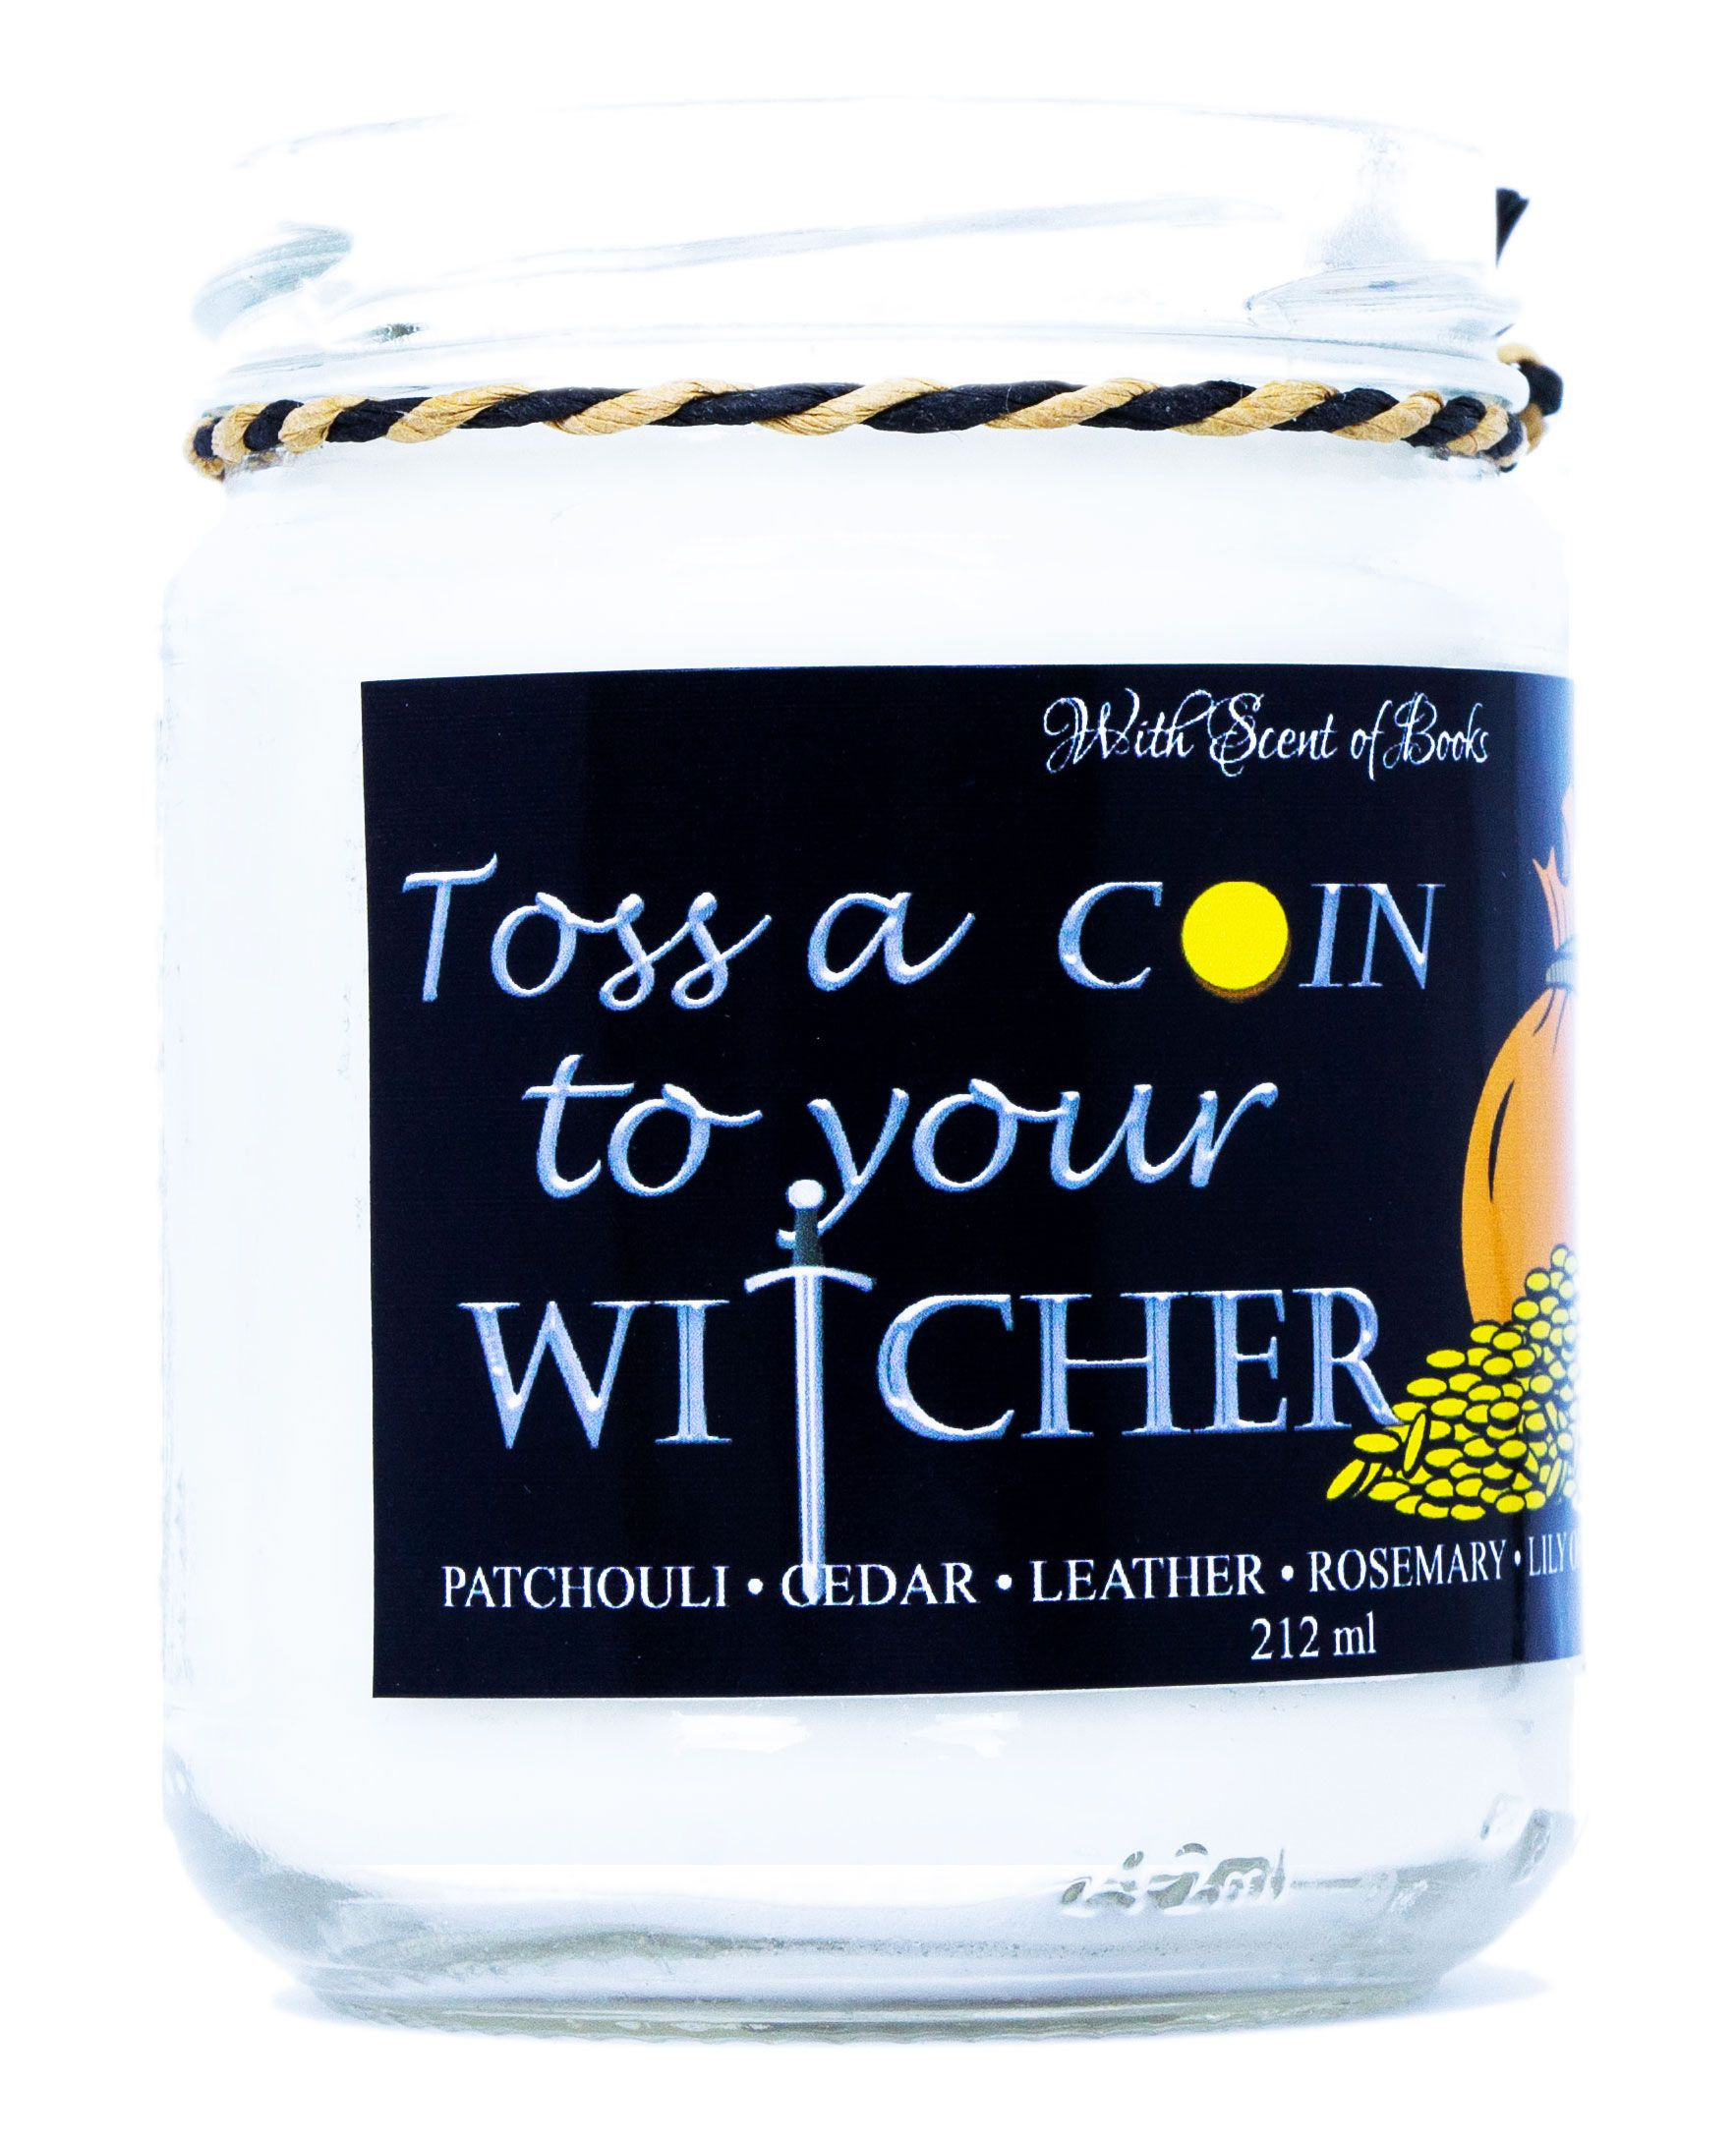 Ароматна свещ The Witcher - Toss a Coin to Your Witcher, 212 ml - 3